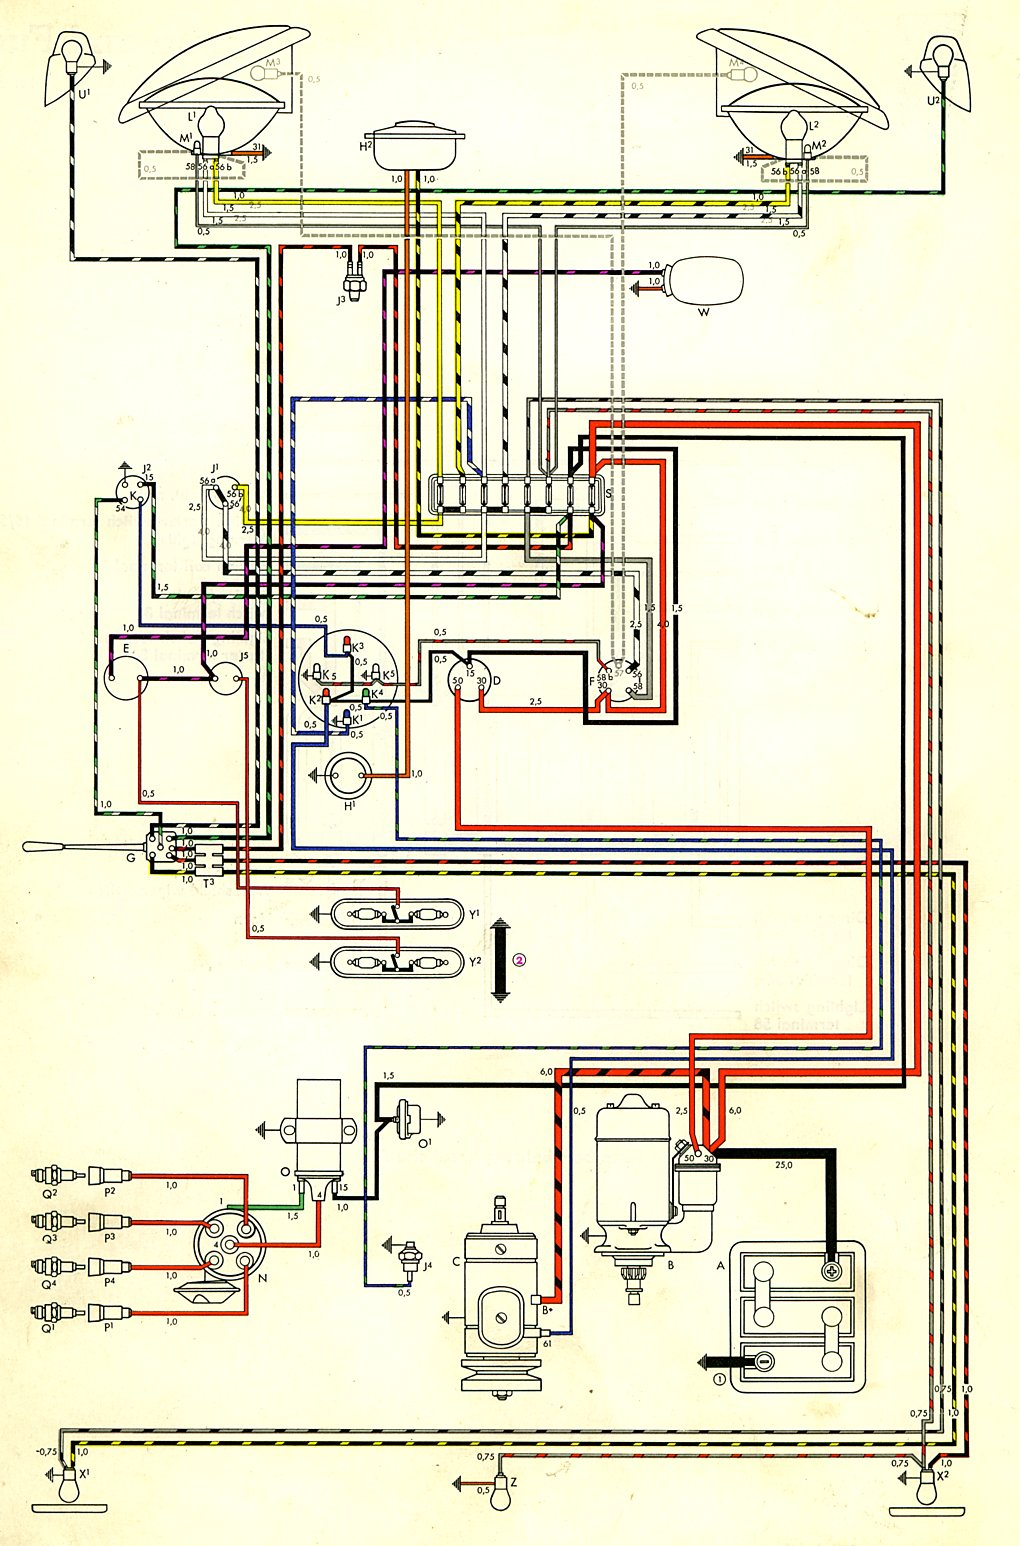 small resolution of 78 vw bus engine diagram vw type 4 engine wiring diagram 67 vw bus wiring diagram